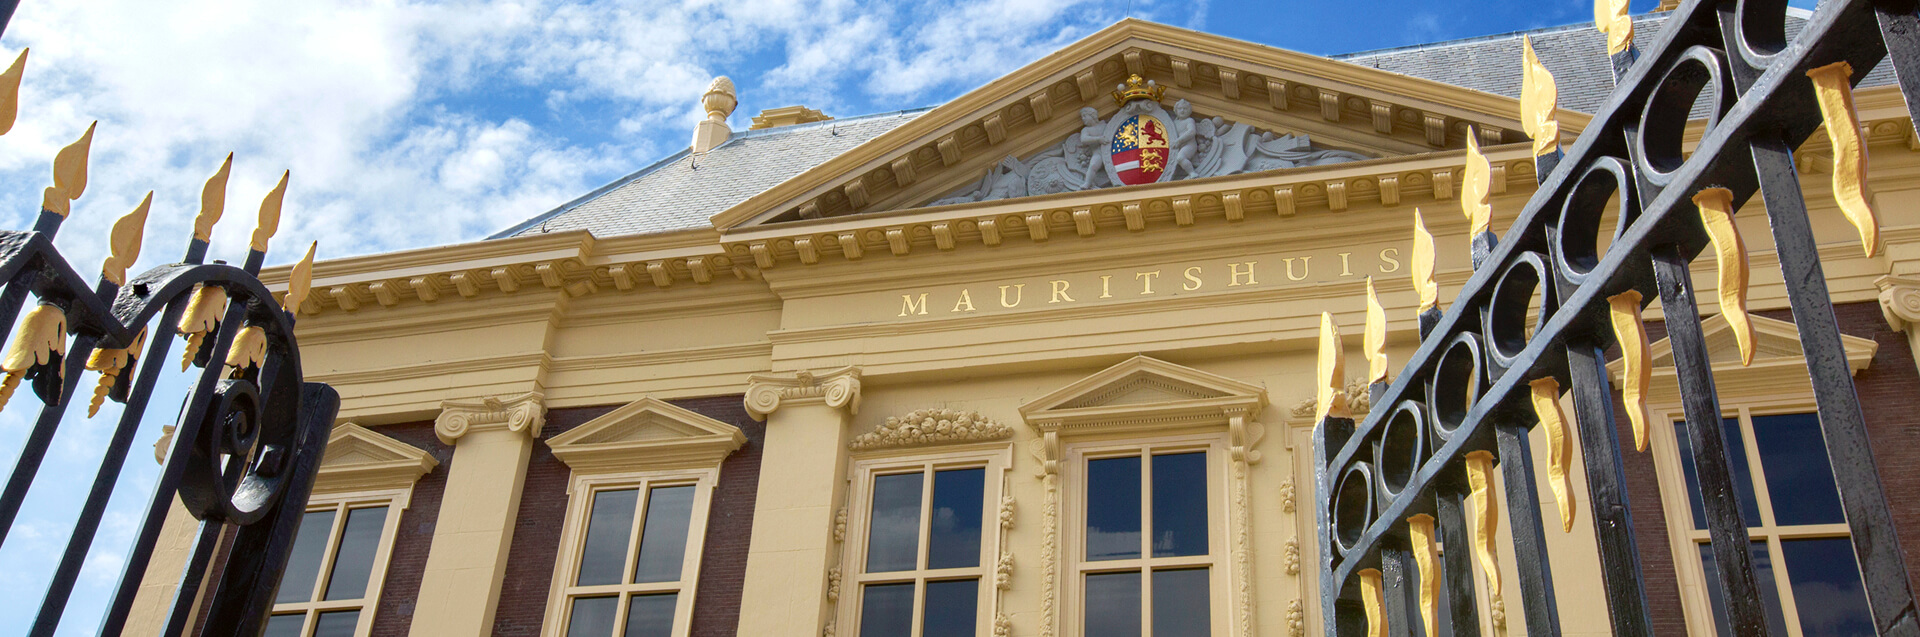 Mauritshuis_L